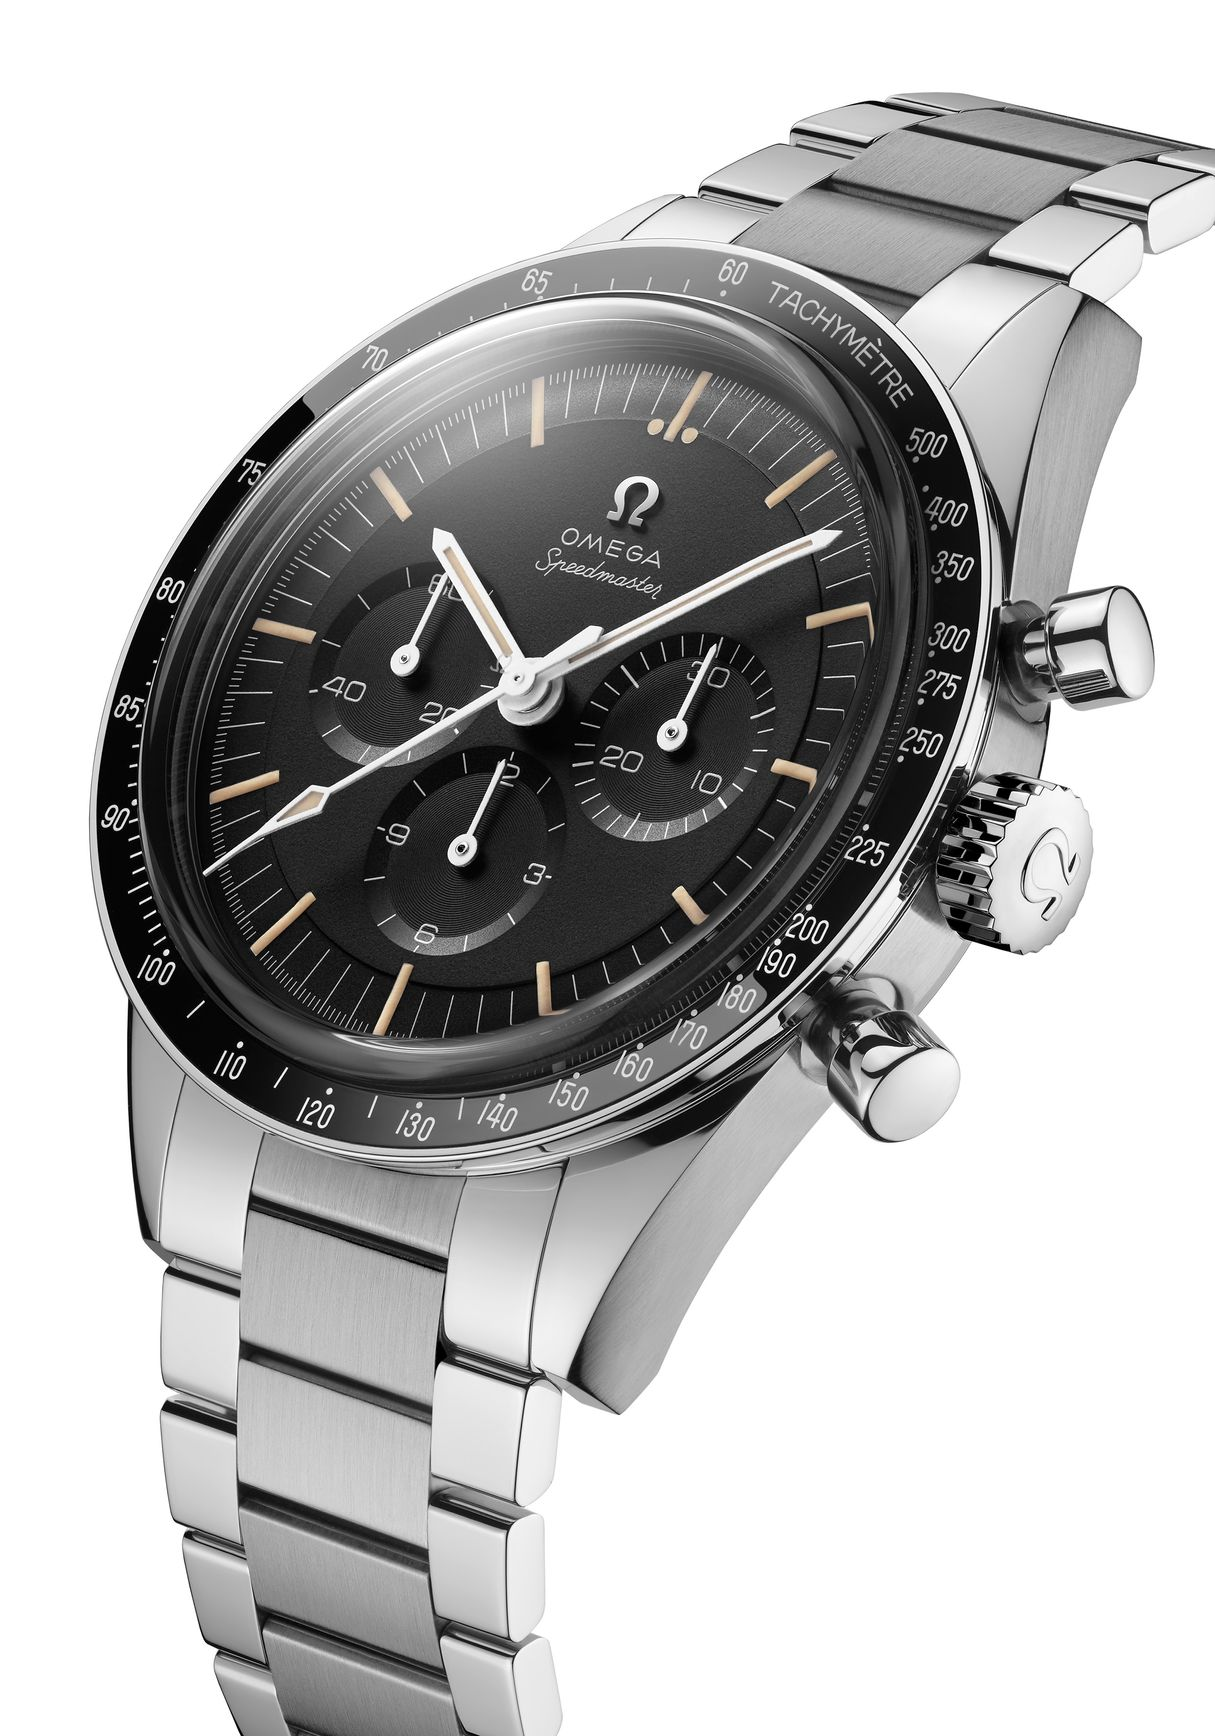 Stainless Steel Omega Speedmaster Moonwatch 321